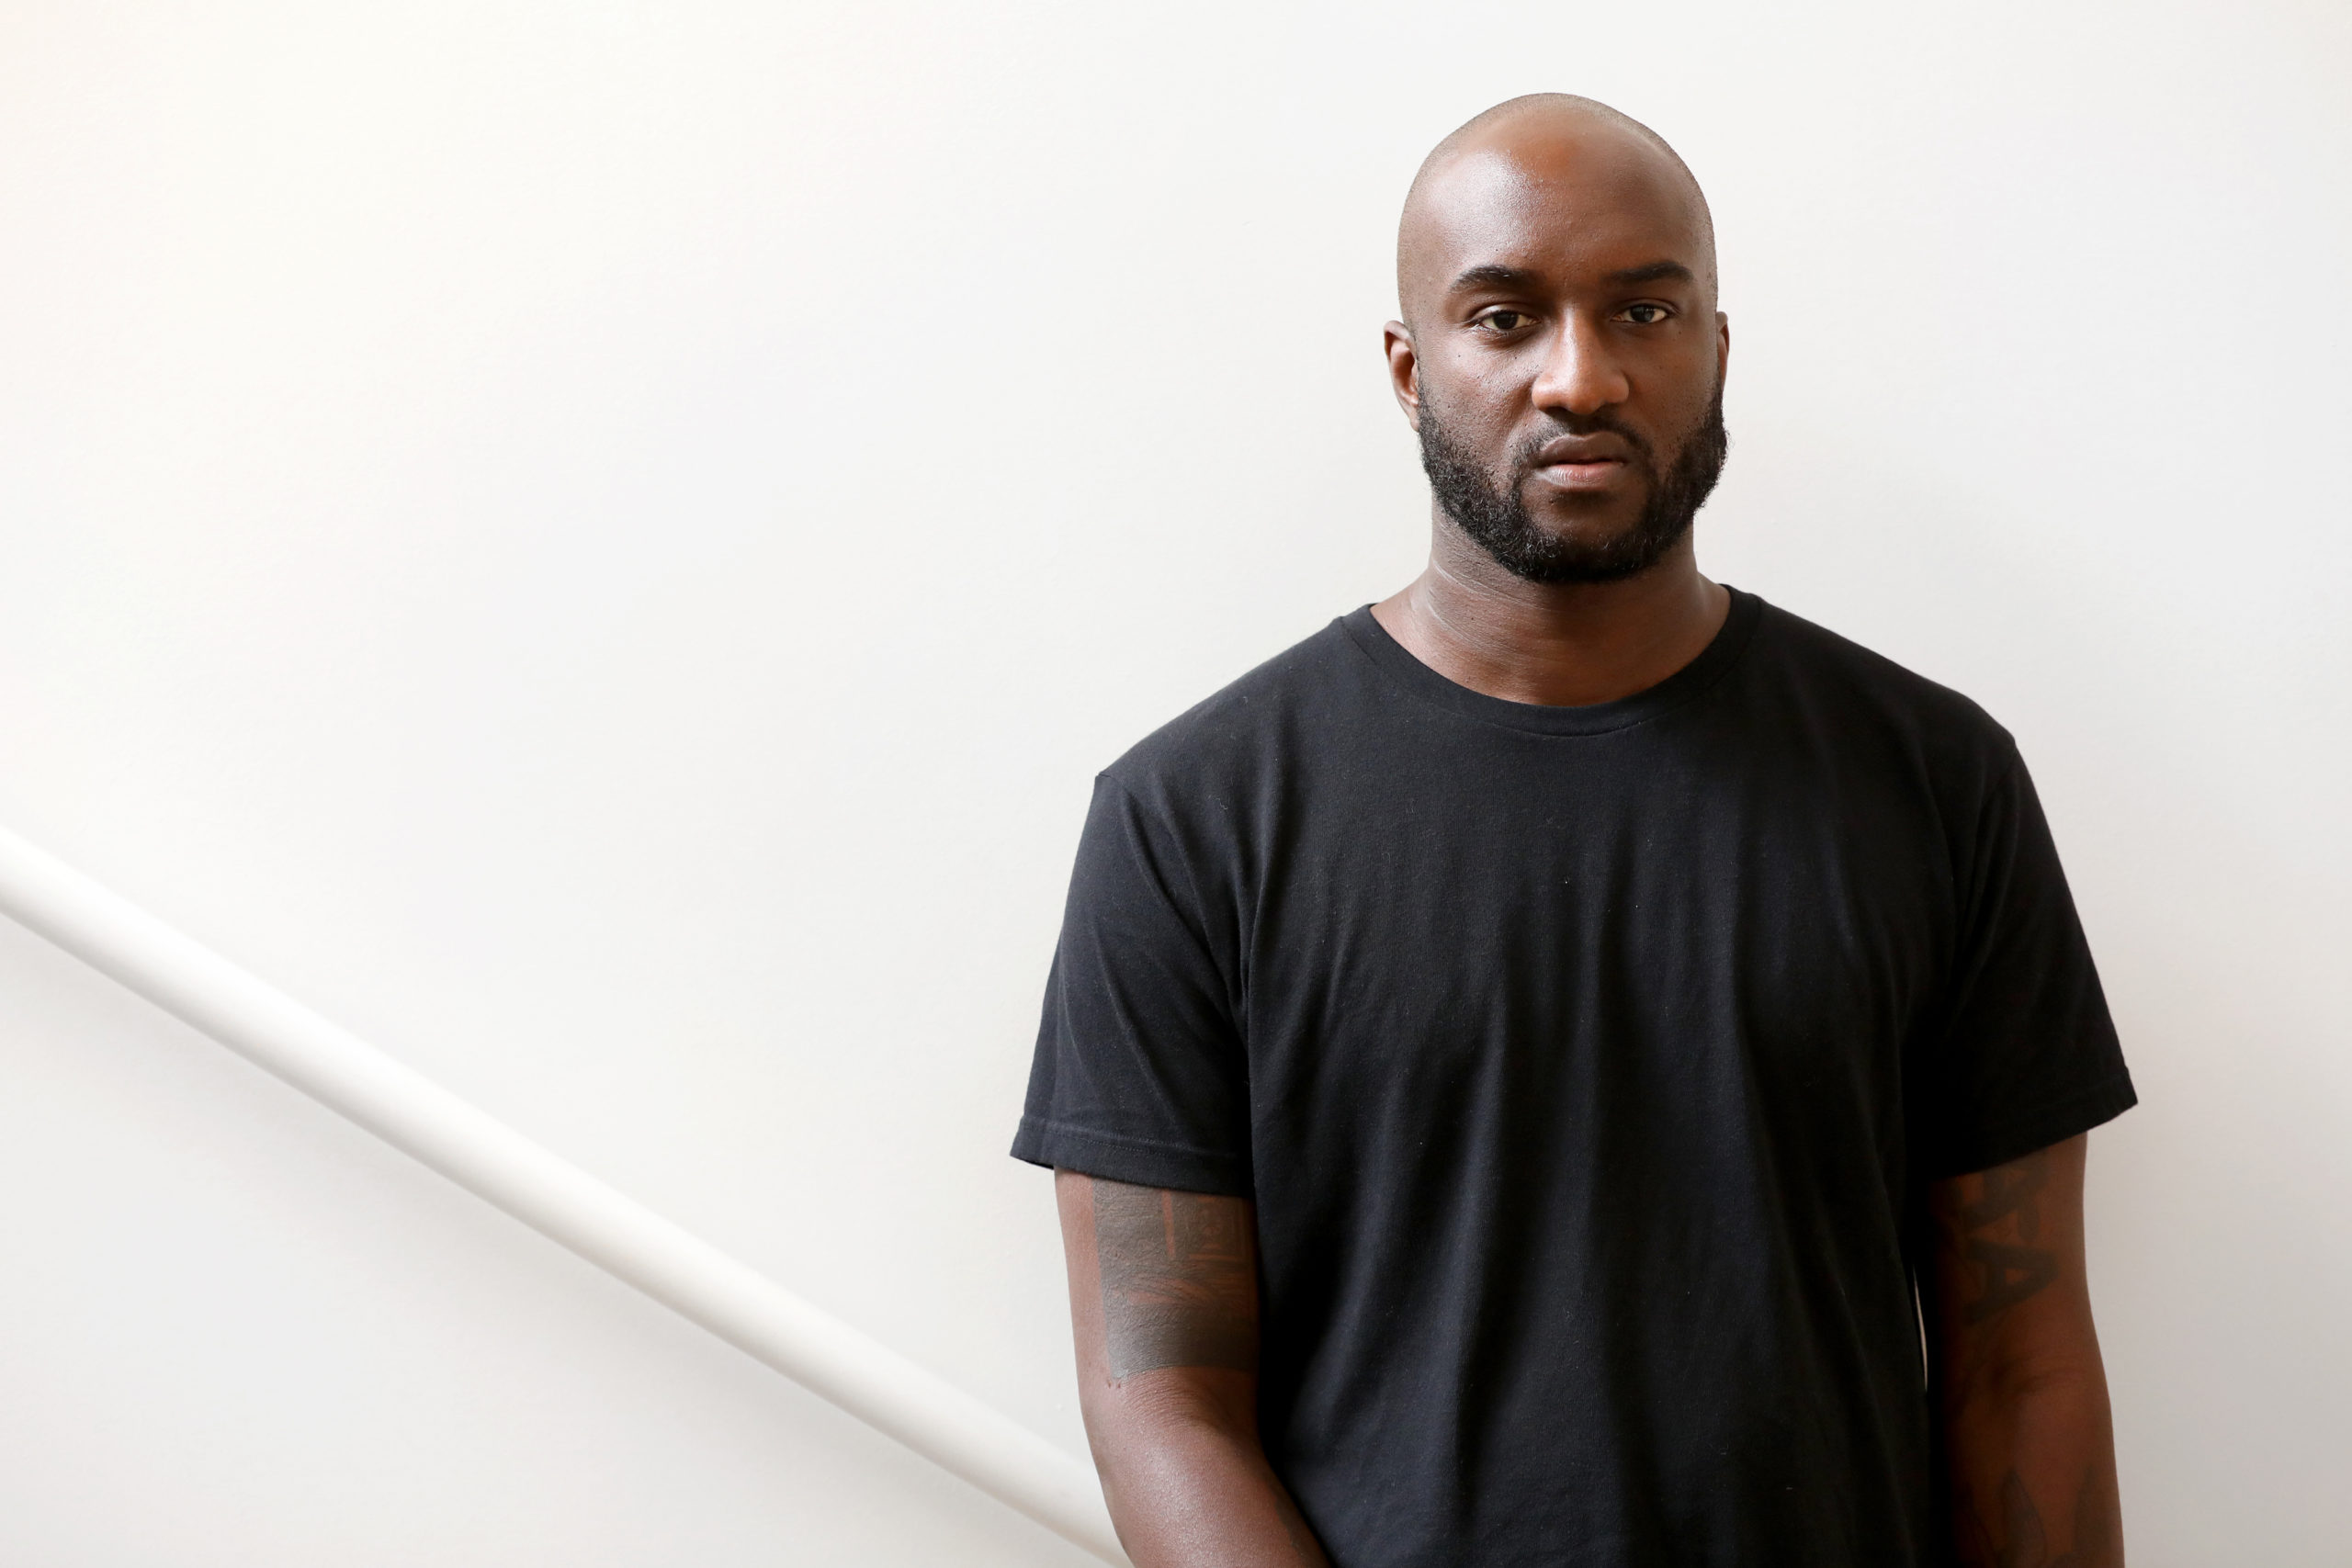 Virgil Abloh, Artistic Director For Louis Vuitton's Menswear Collection Will Be The Keynote Speaker For The 2020 AIA.